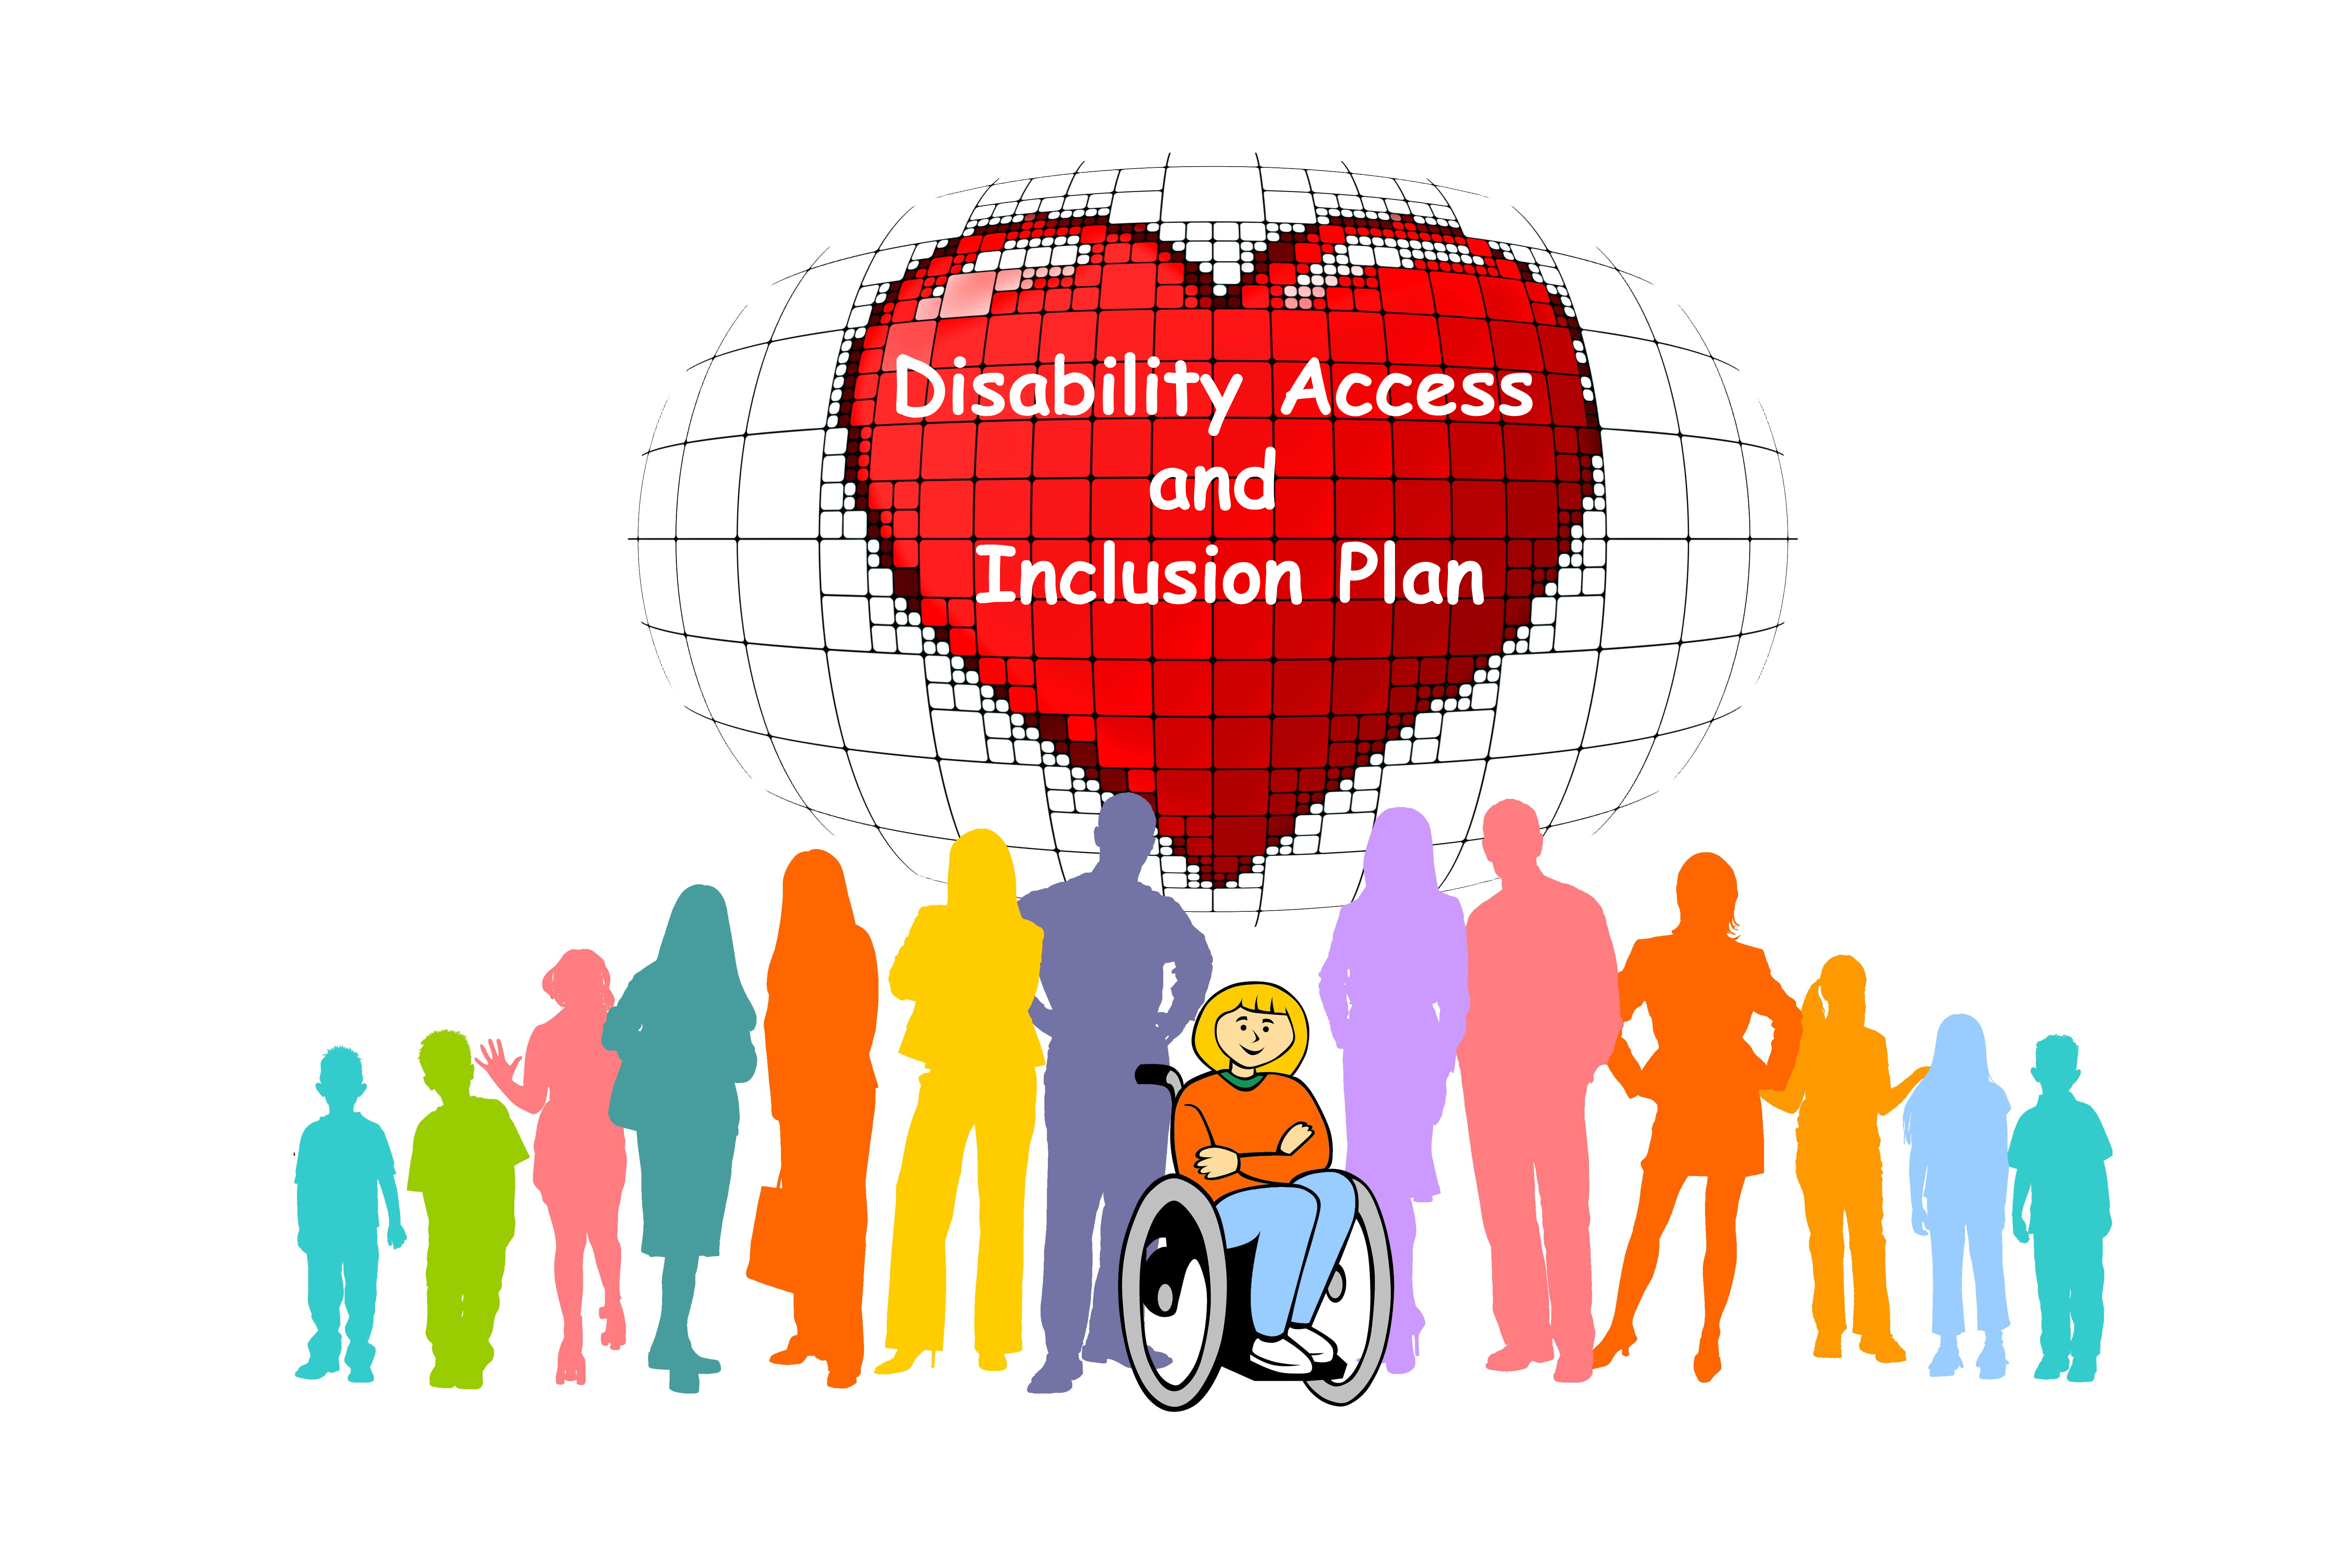 Disability Access and Inclusion Plan Survey